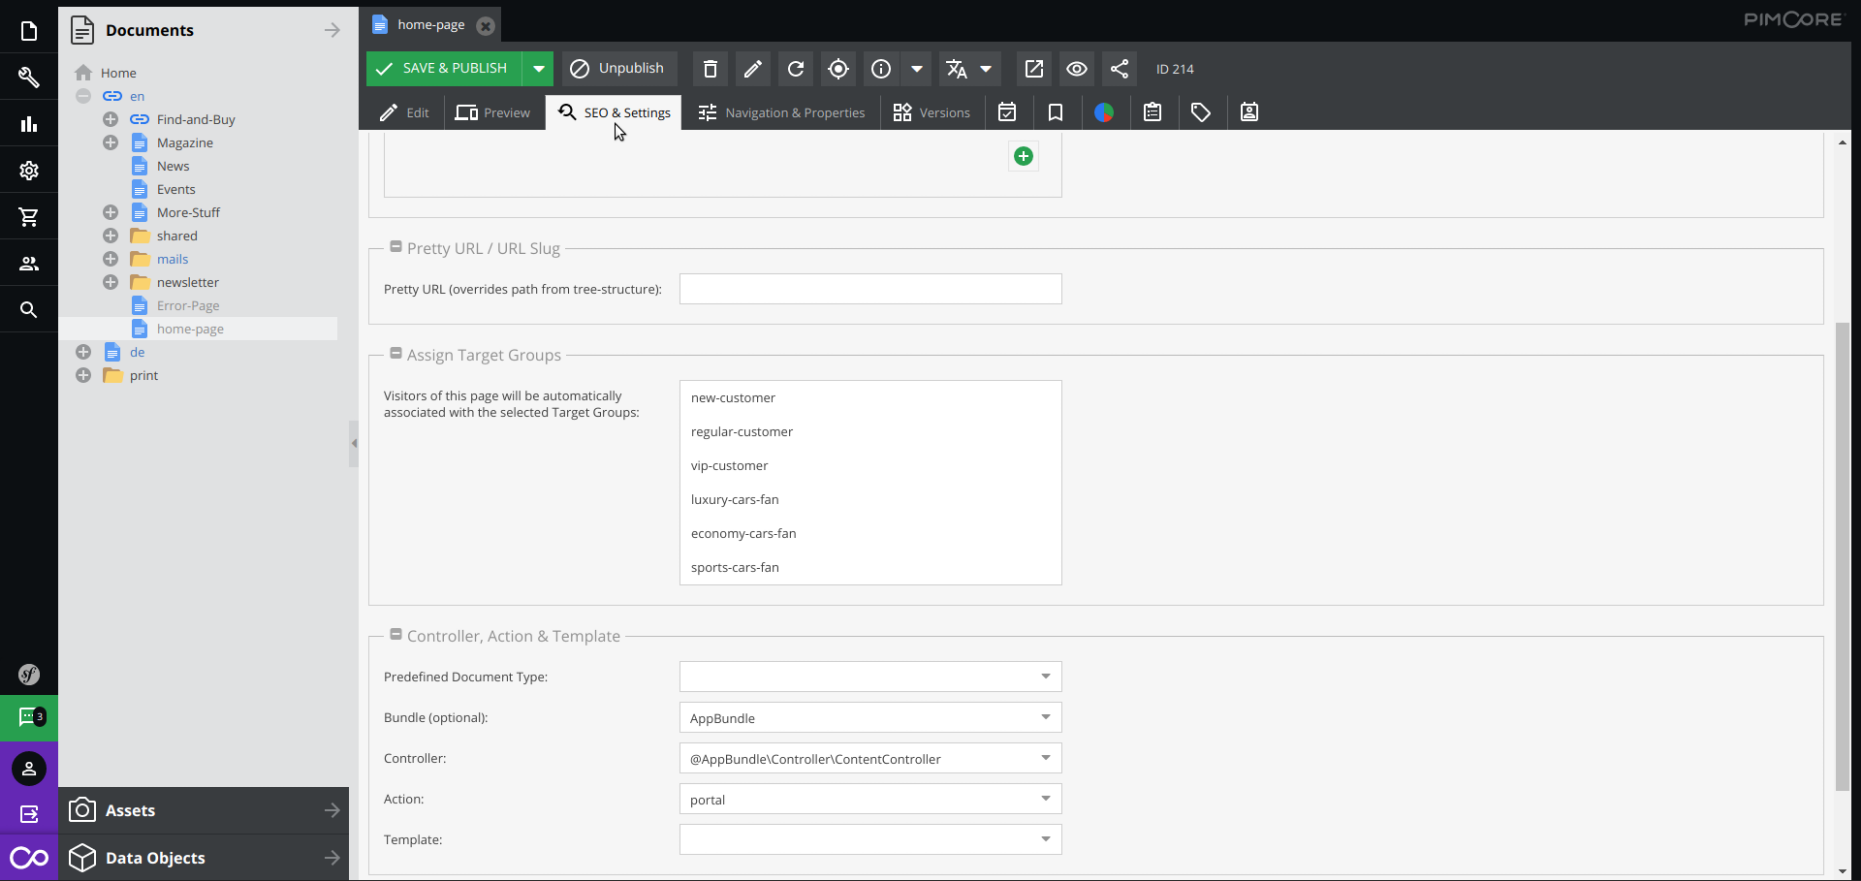 Editing SEO & settings for new landing page in Pimcore